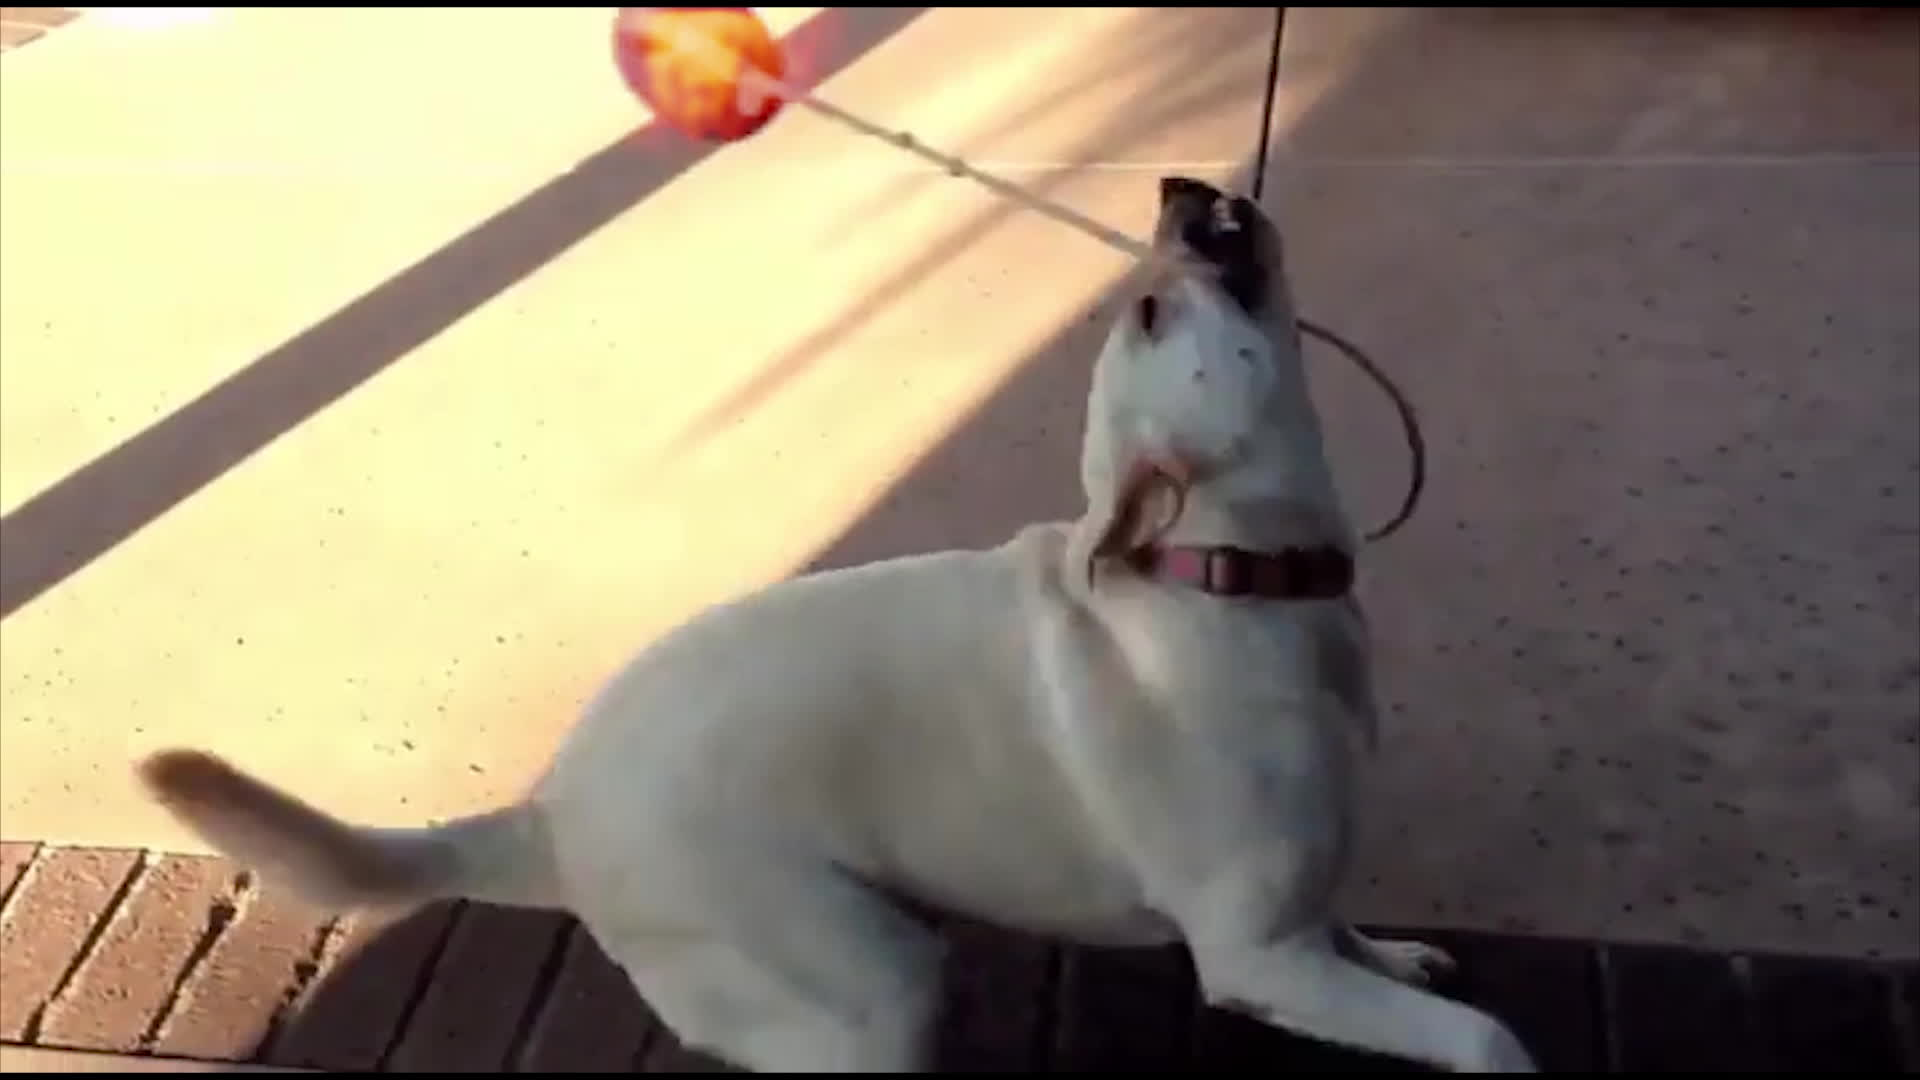 michaelbaygifs, Dog spinning fireball GIFs